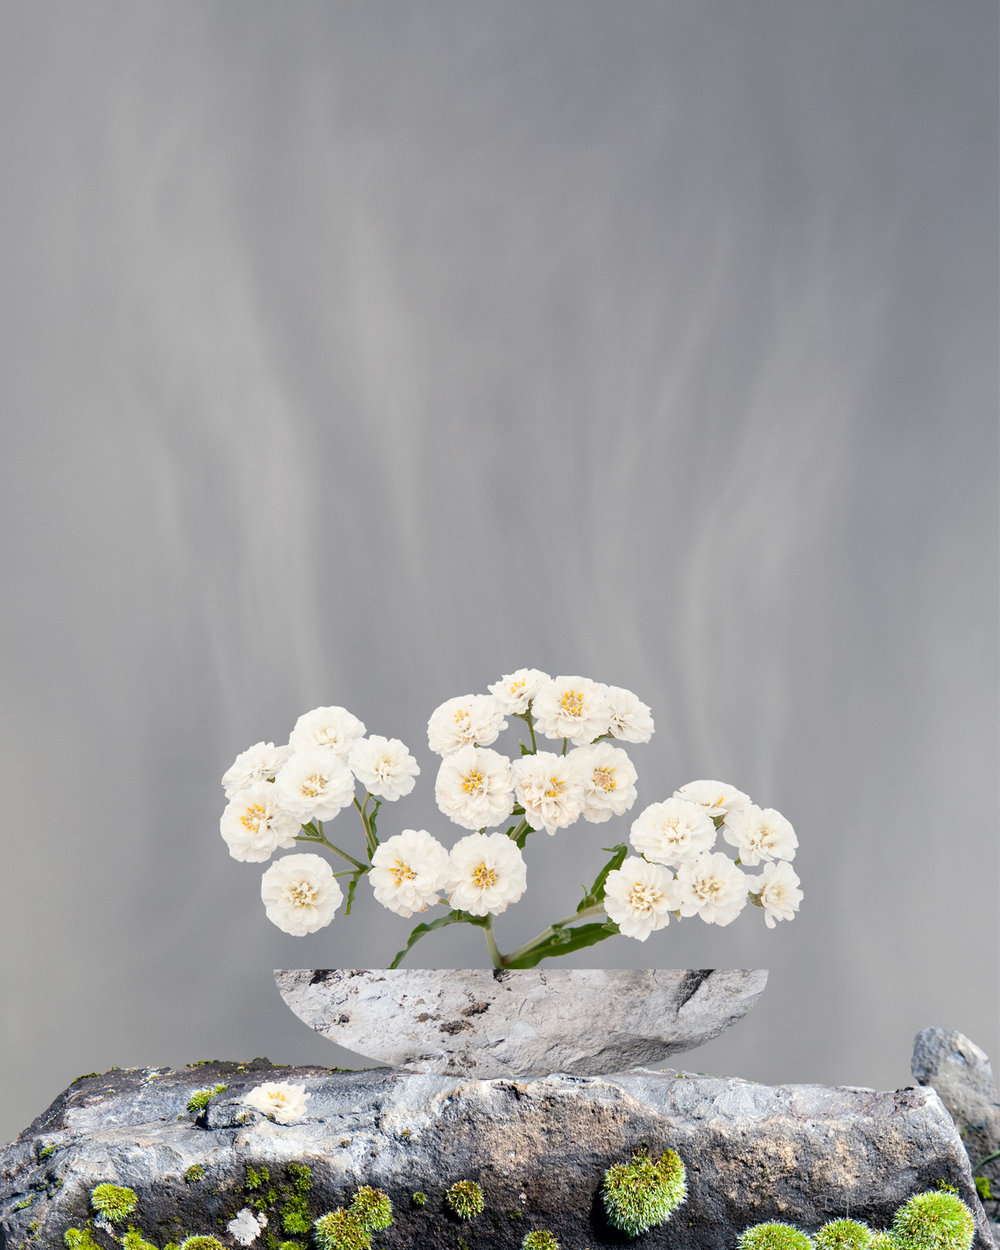 The Pearly Everlasting